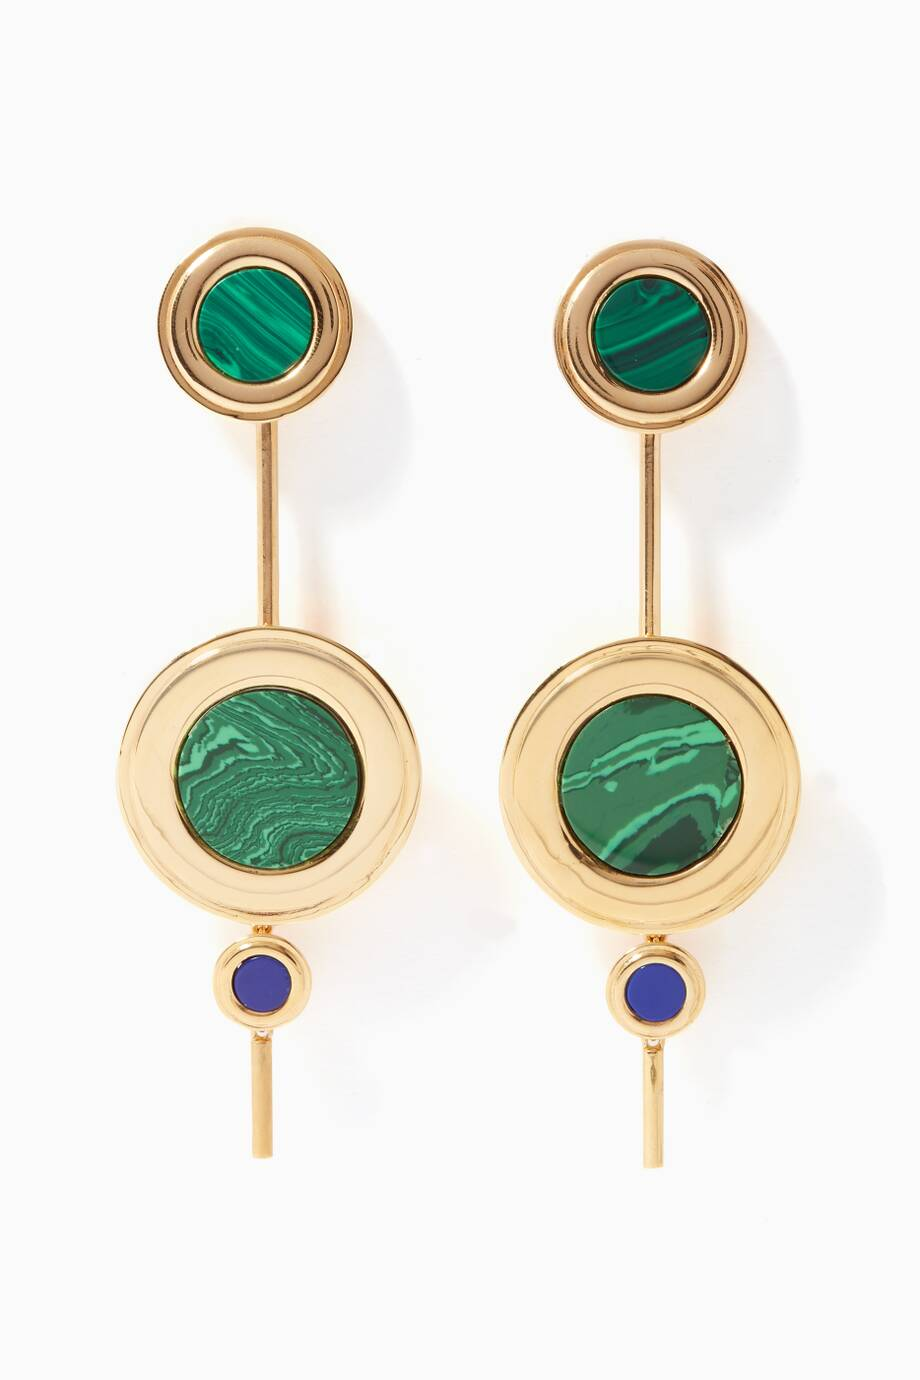 Joanna Laura Constantine Tribal Statement Earrings in Gold-Plated Brass with Lapis Lazuli and Malachite 7UHHT